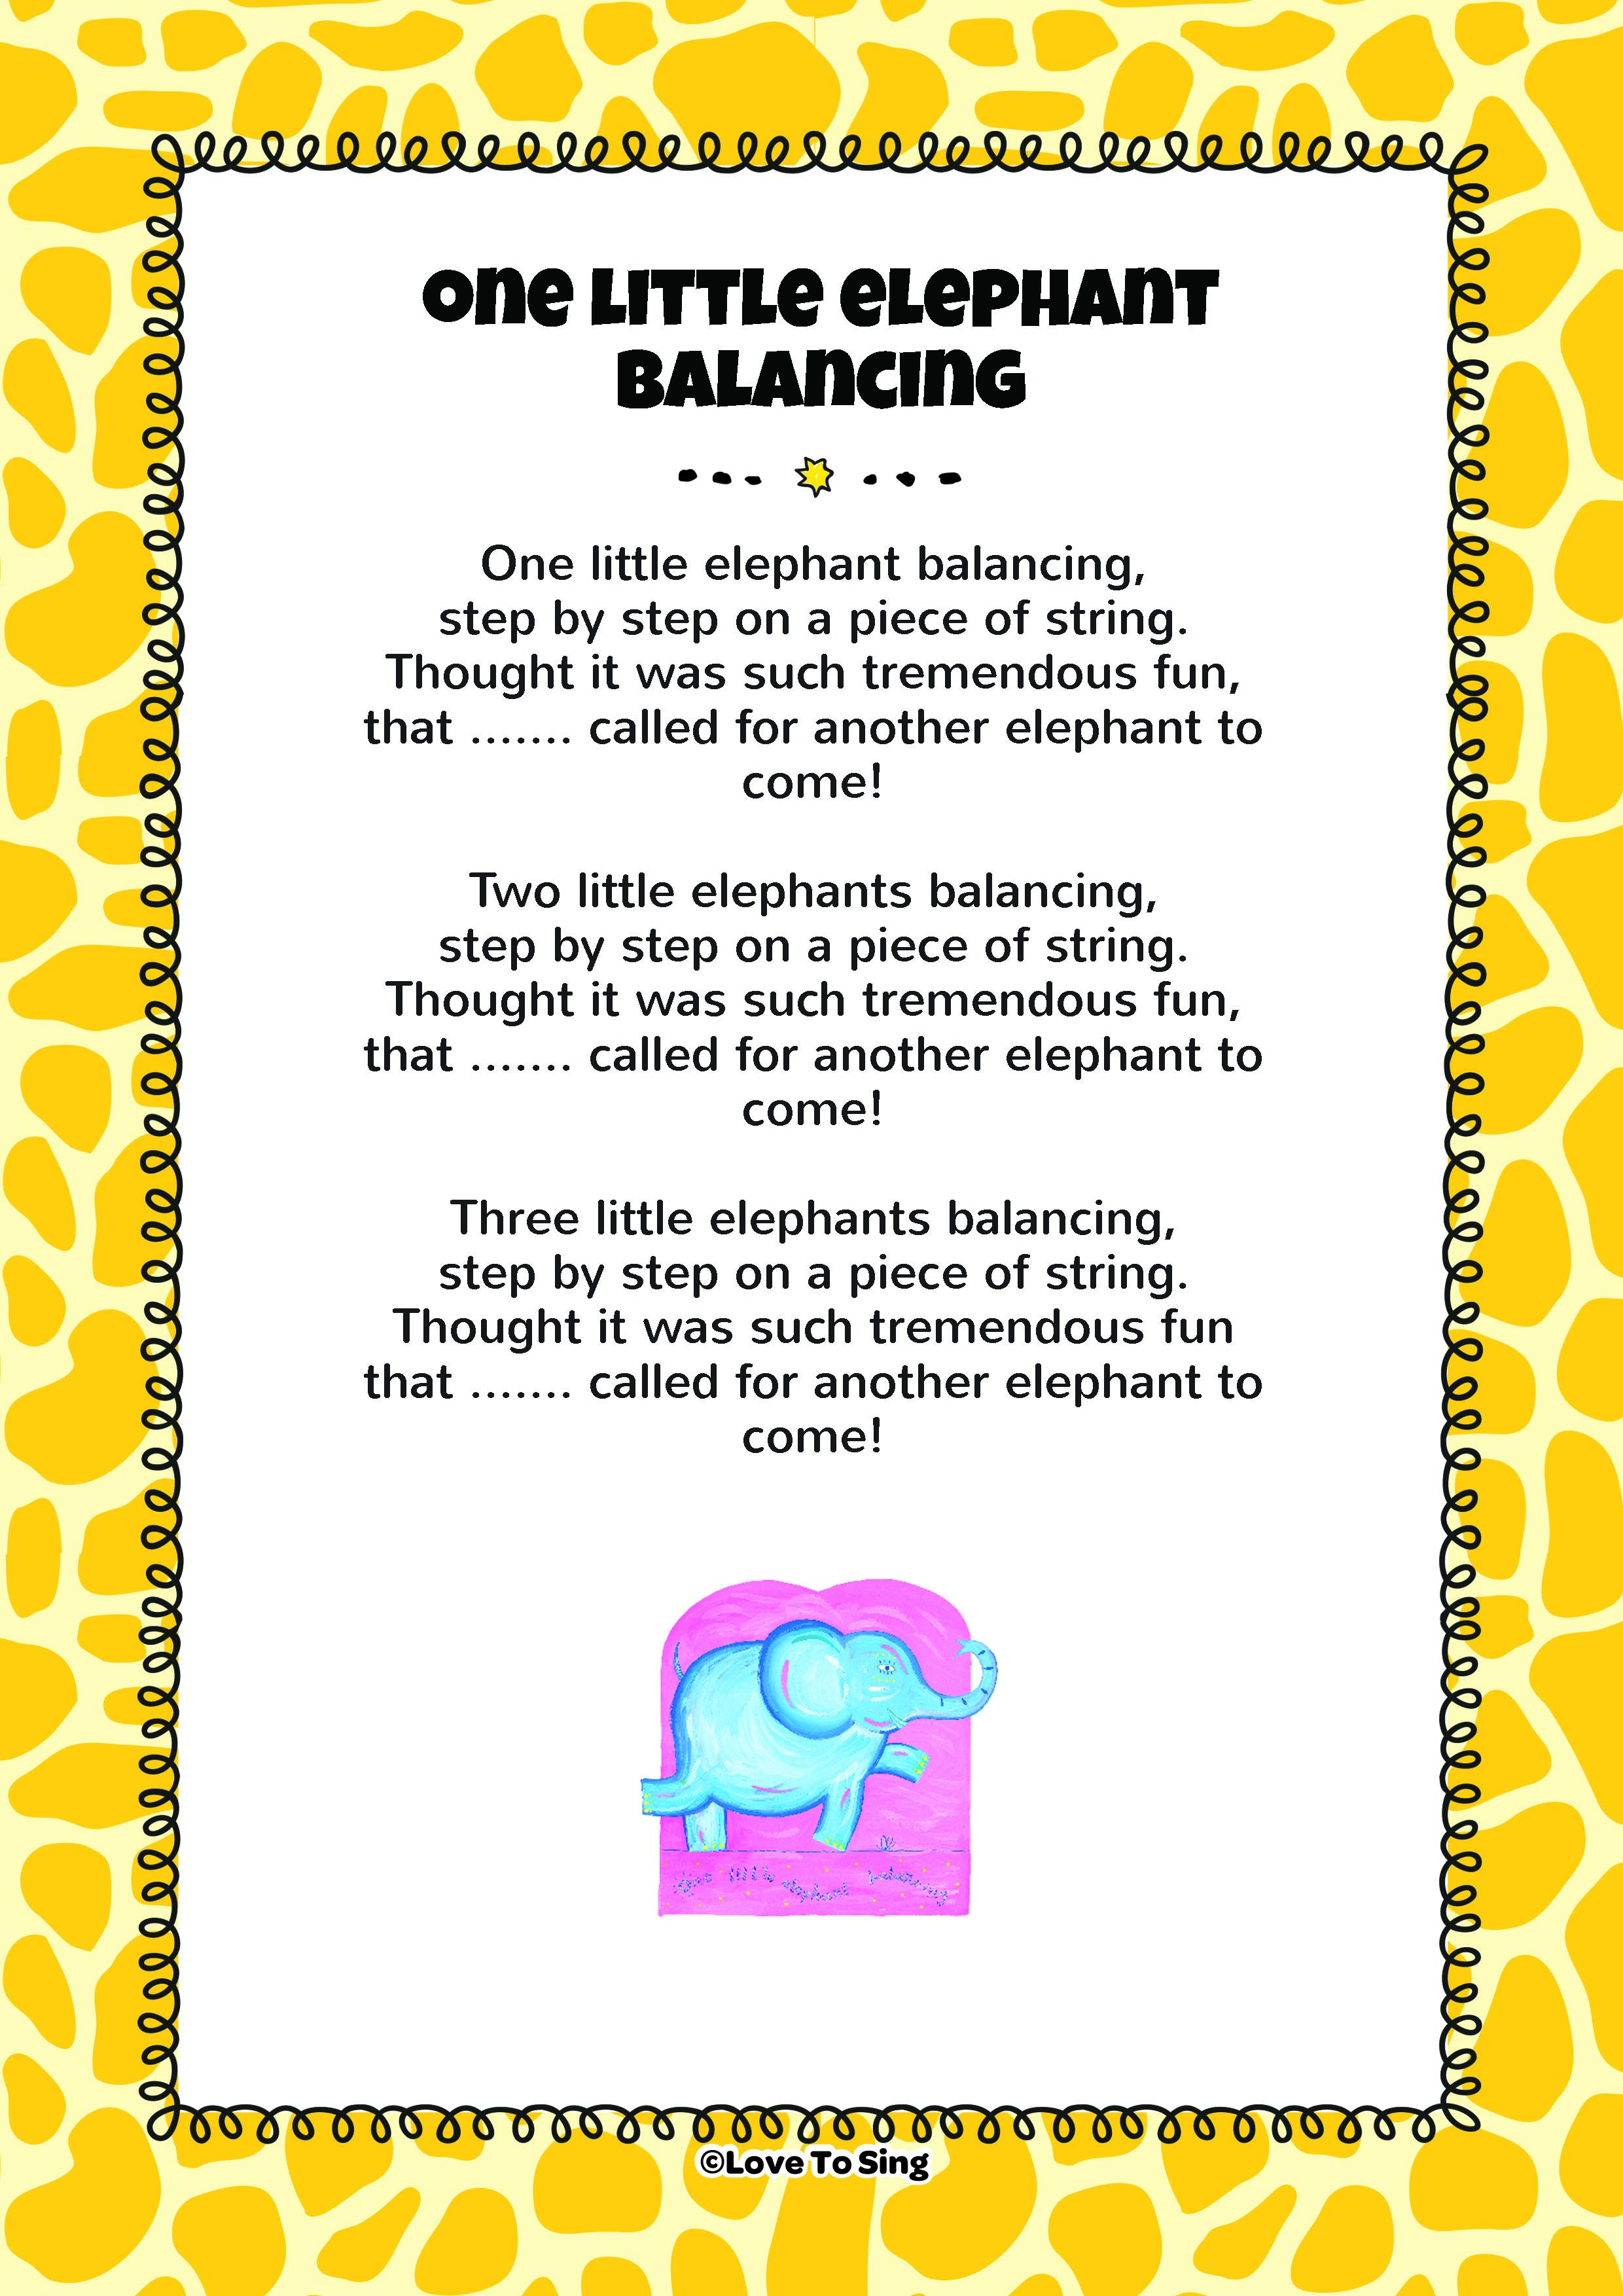 one little elephant balancing kids video song with free lyrics